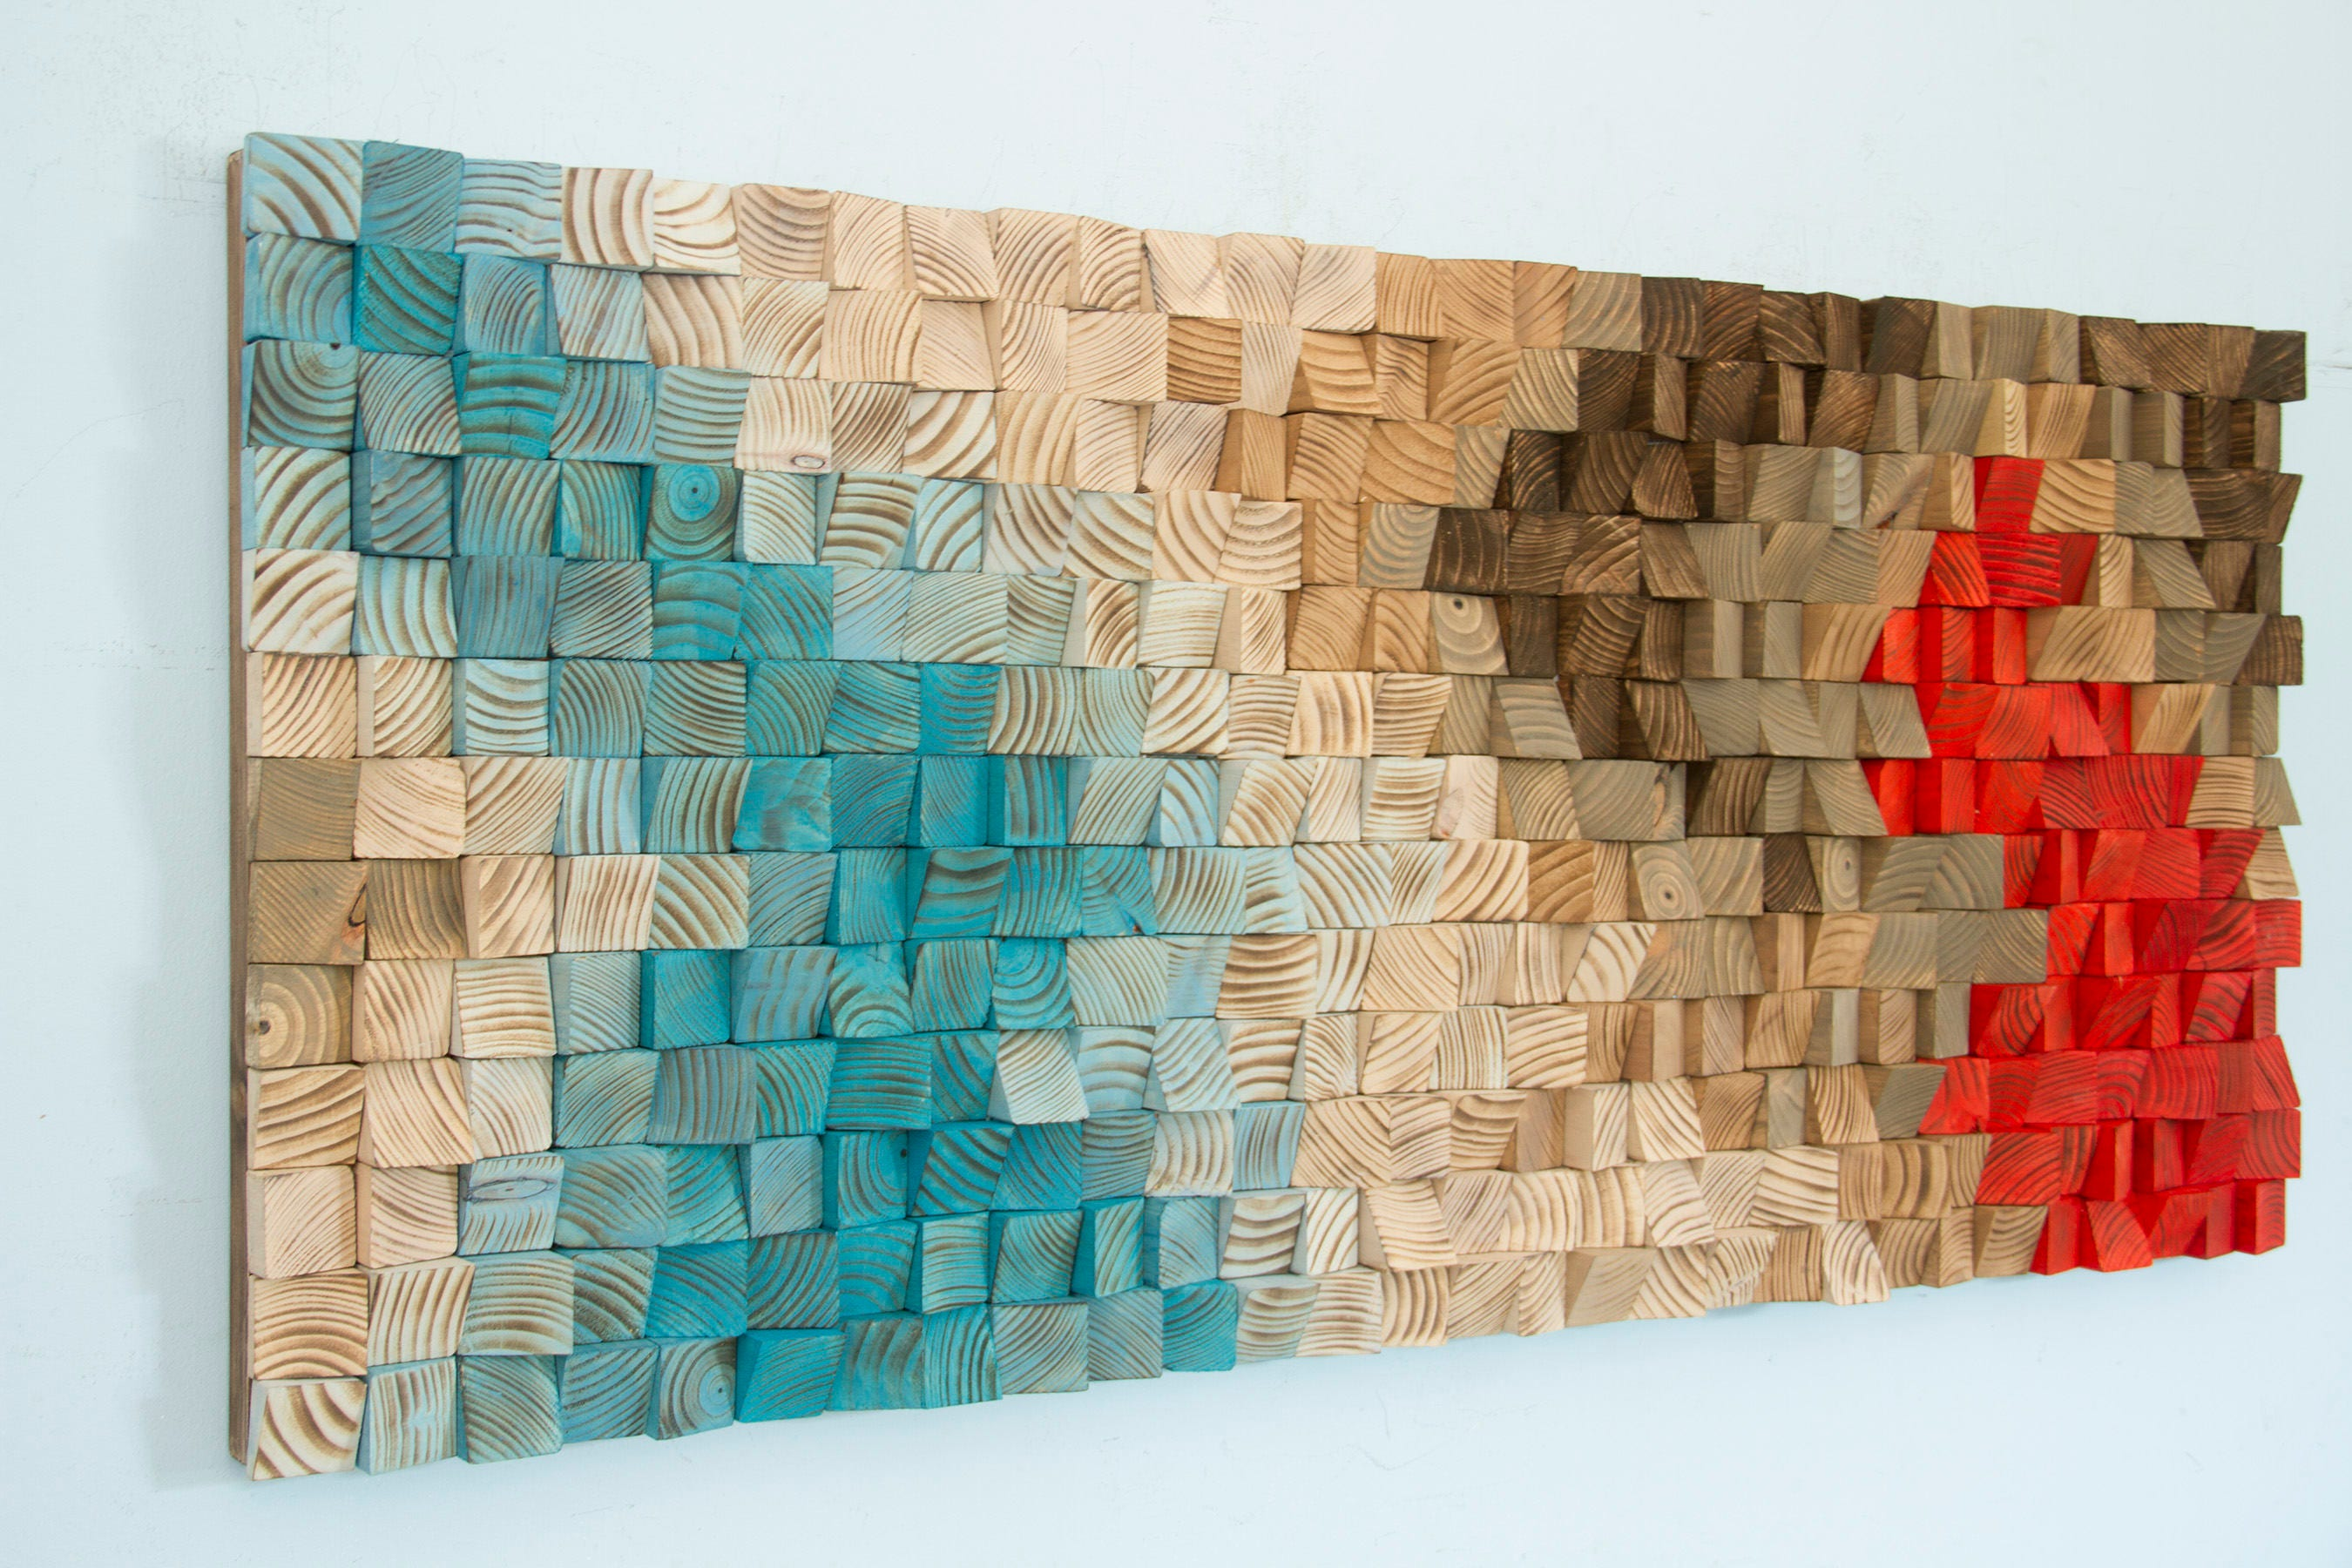 wood wall art wood sound diffusor sculpture mosaic. Black Bedroom Furniture Sets. Home Design Ideas